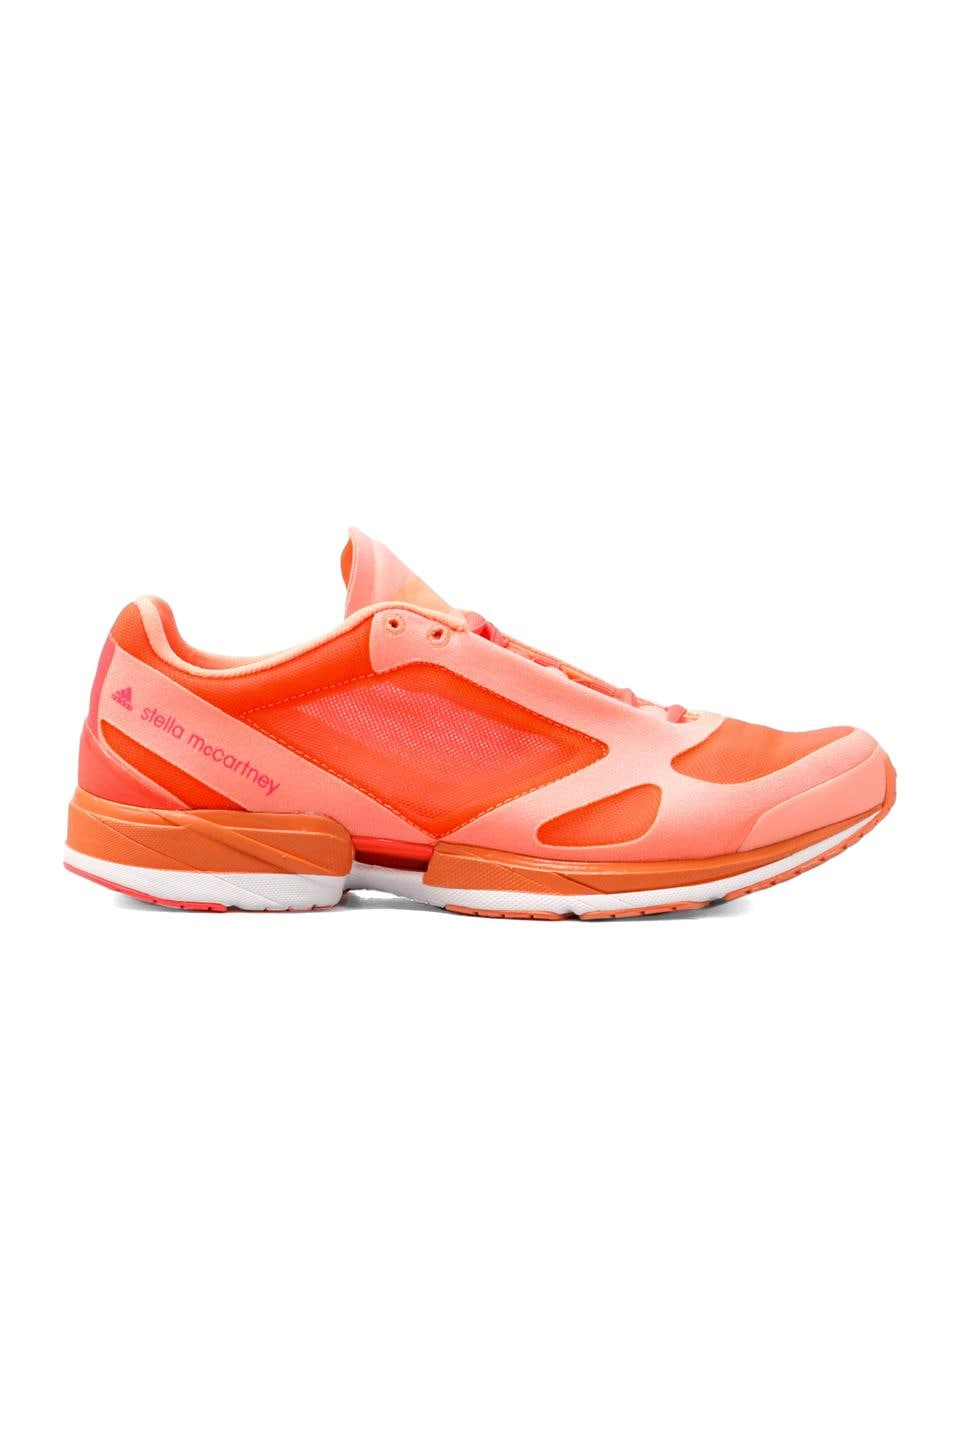 adidas by Stella McCartney Athletic Shoe in Ultra Bright/Turbo/Bliss Coral